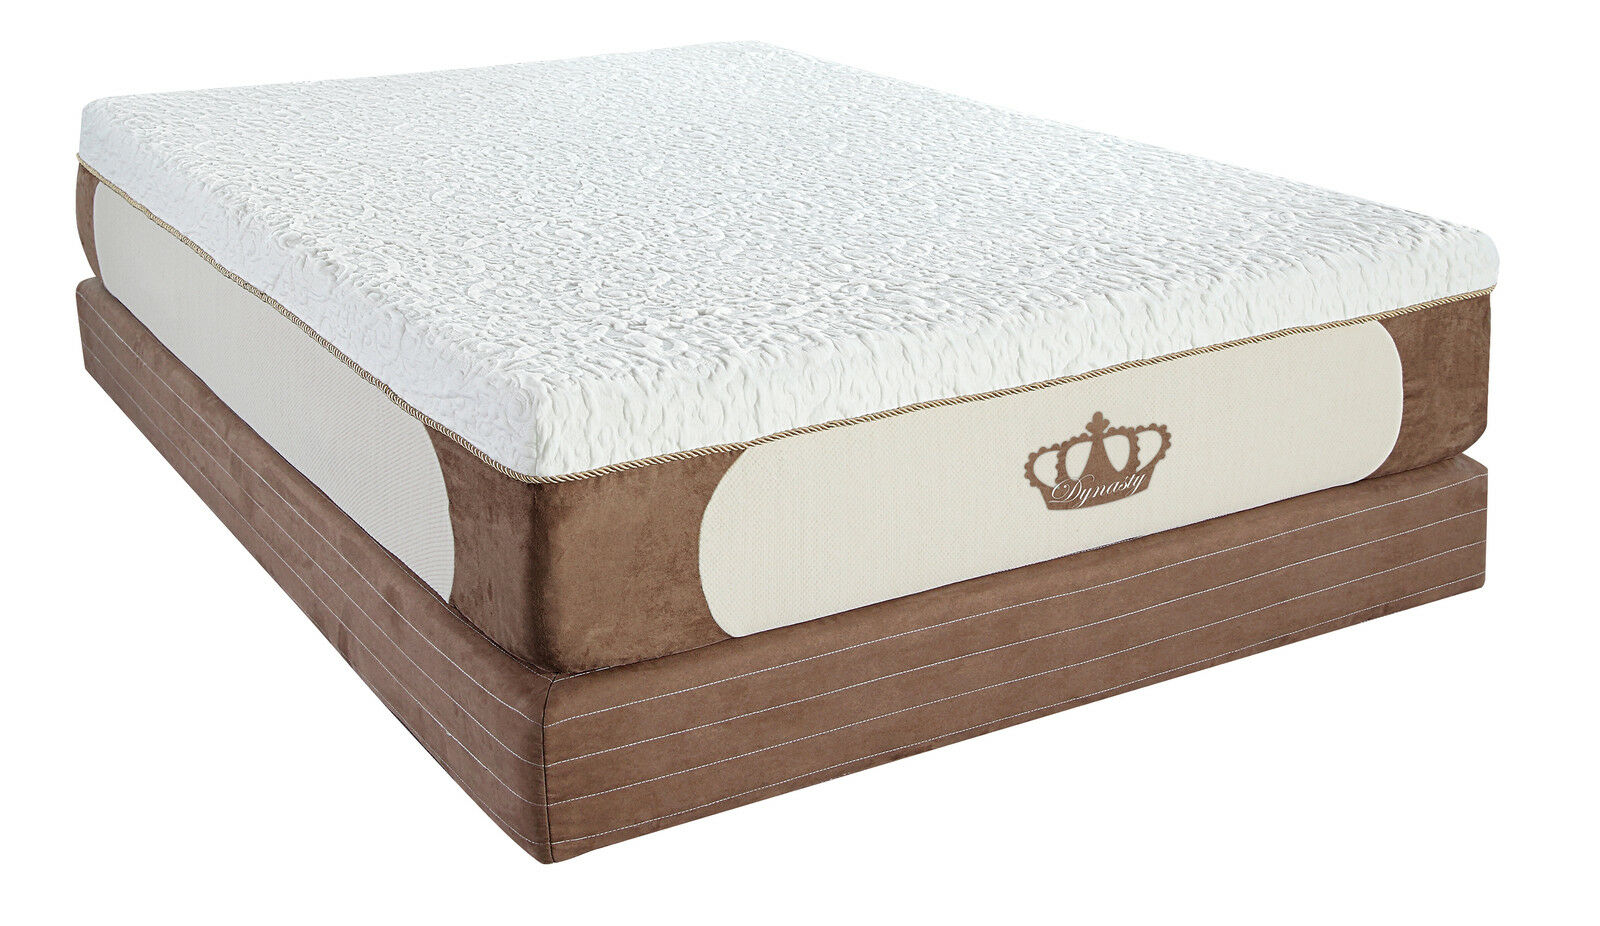 Dynasty Mattress Celebrity Memory Foam 13 Inch Mattress ...